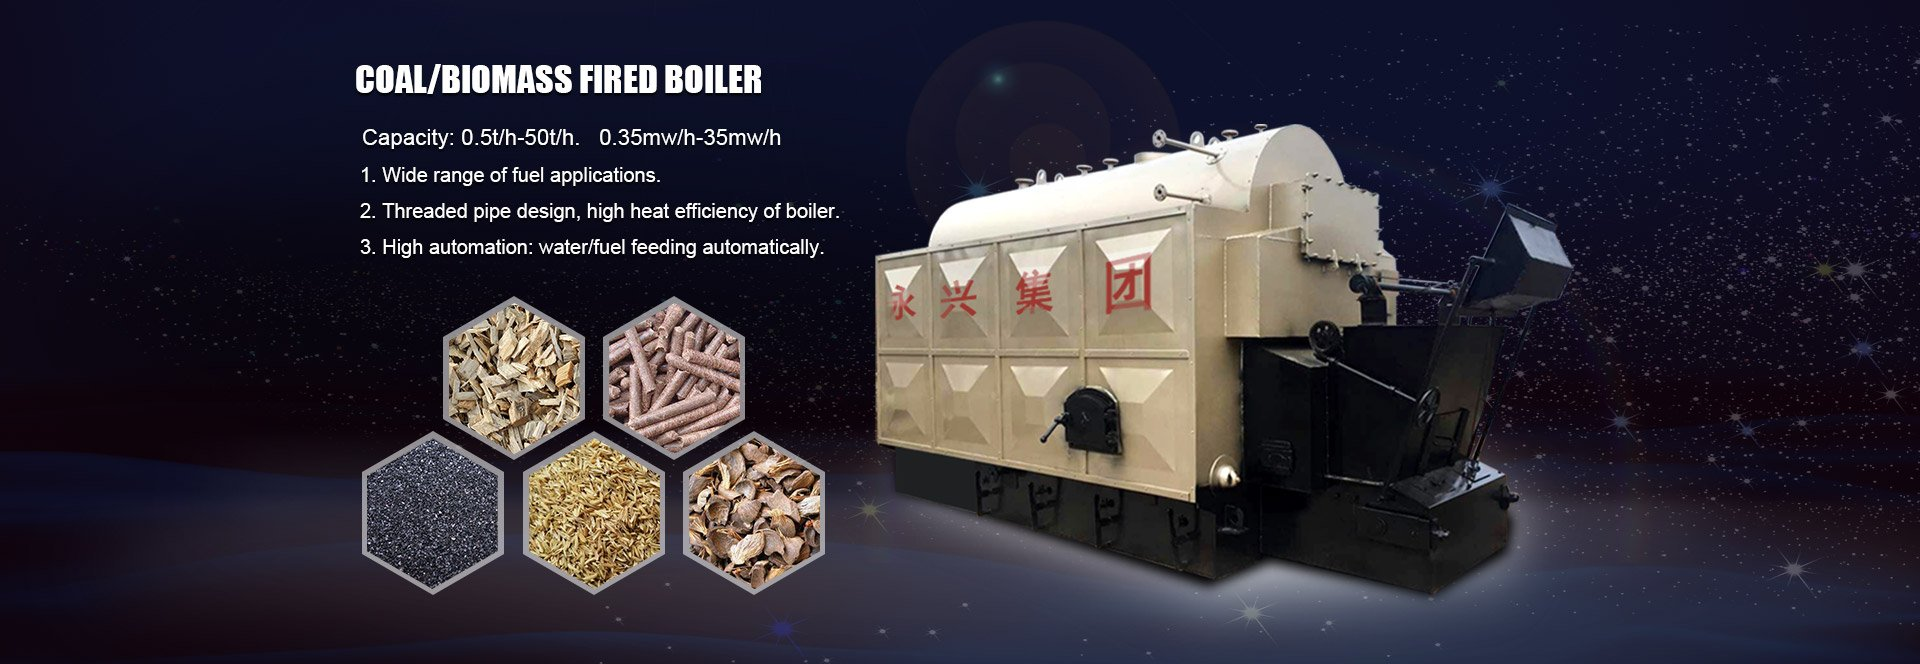 Coal/Biomass Fired Boiler